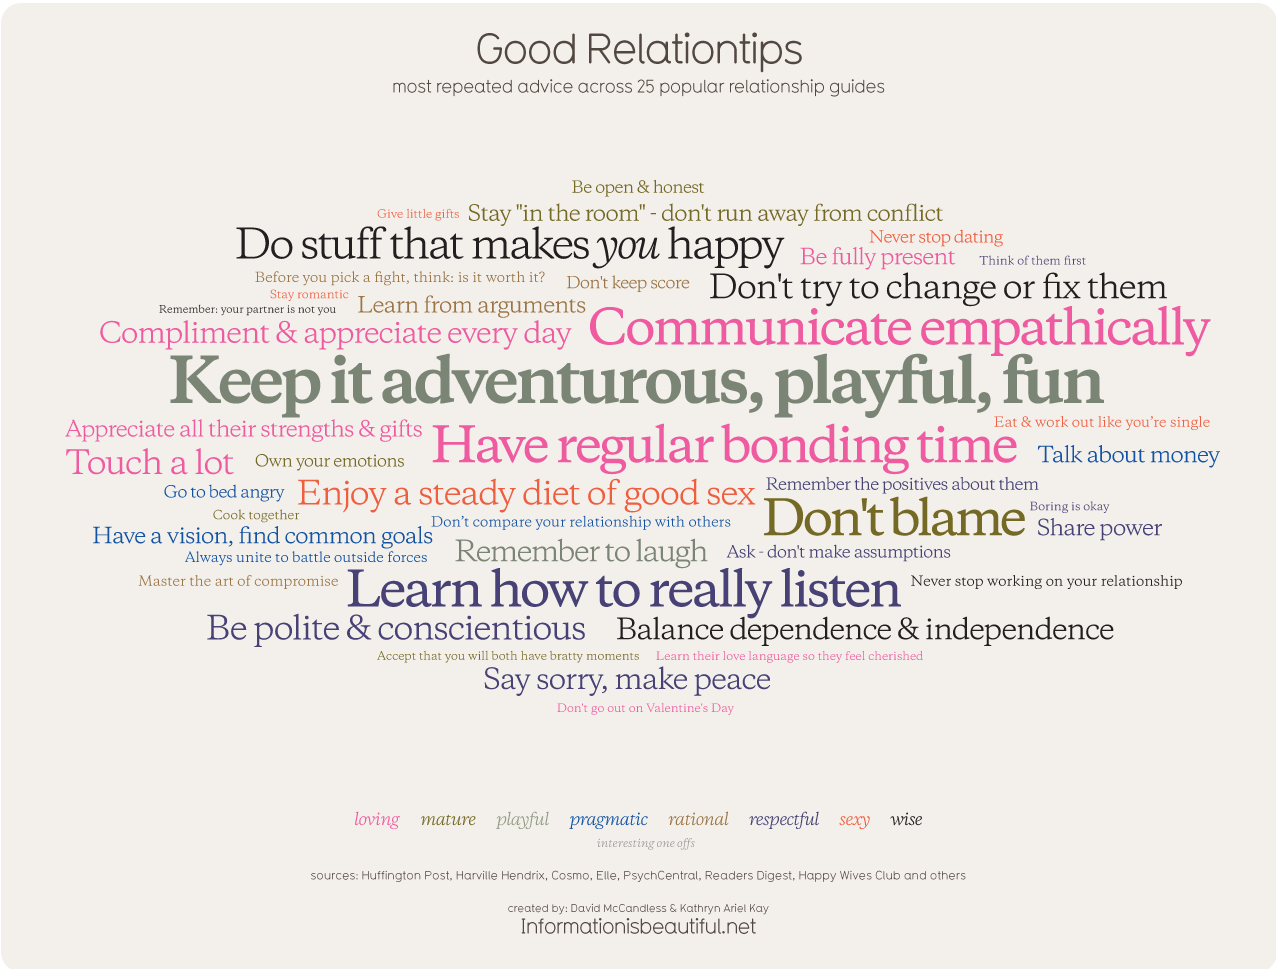 Relationtips - most commonly given relationship advice